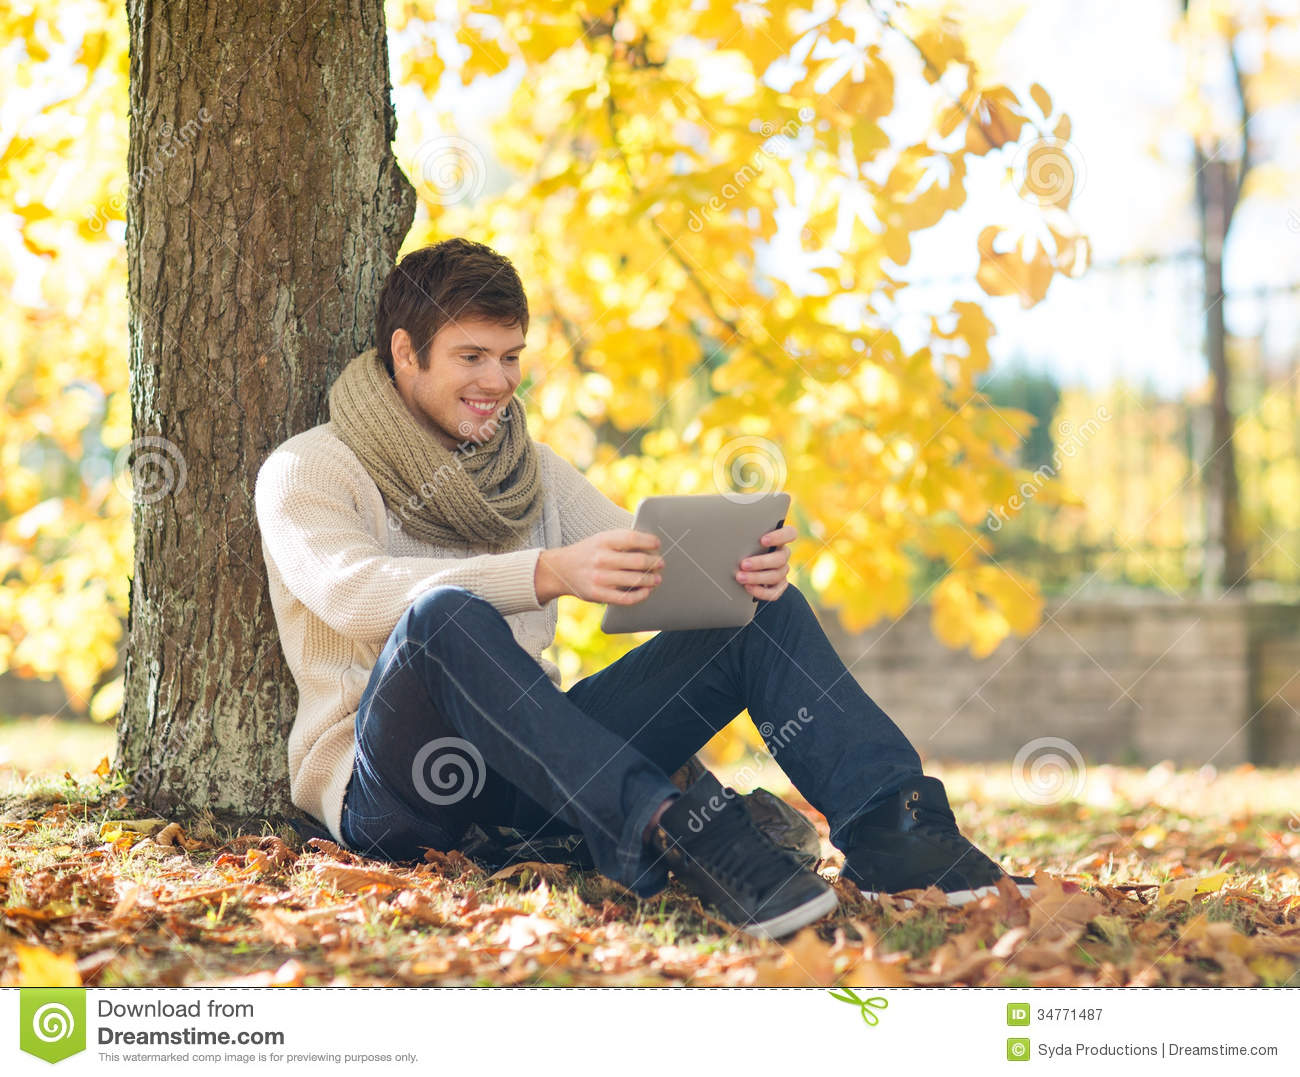 Mens met tabletpc in de herfstpark